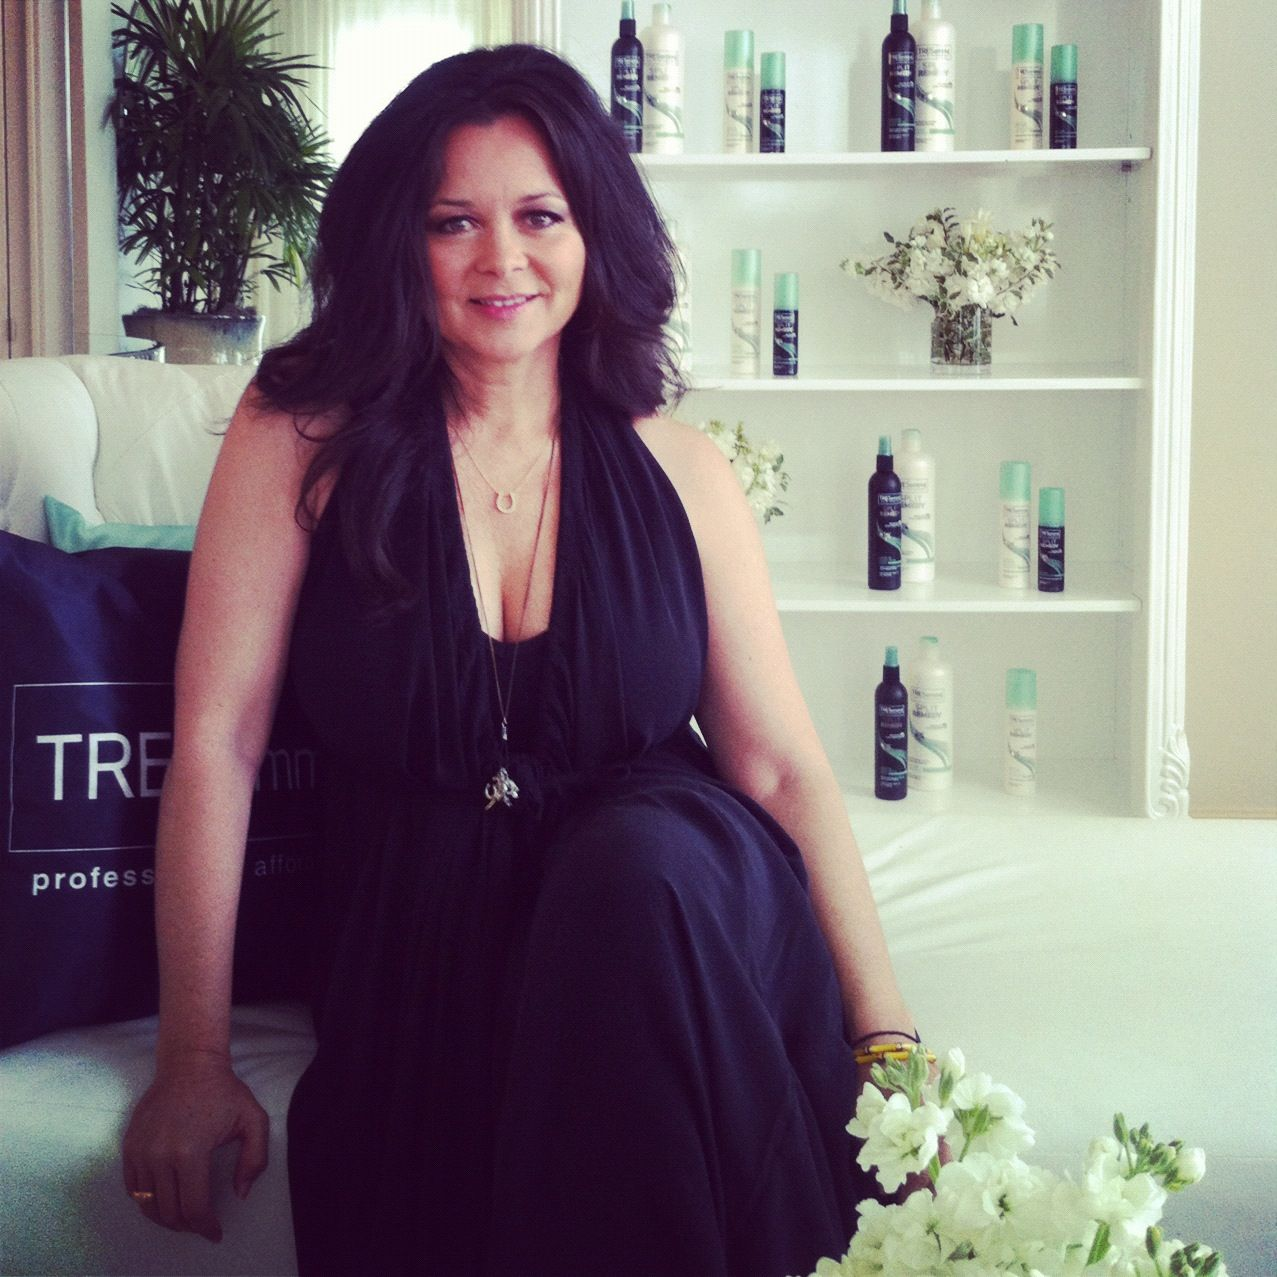 #TRESemme stylist, Elsa, in the VIP suite at @mercedes-benz fashion week  #miami #runway #fashion #fashionshow #swimwear #swimsuit #hair